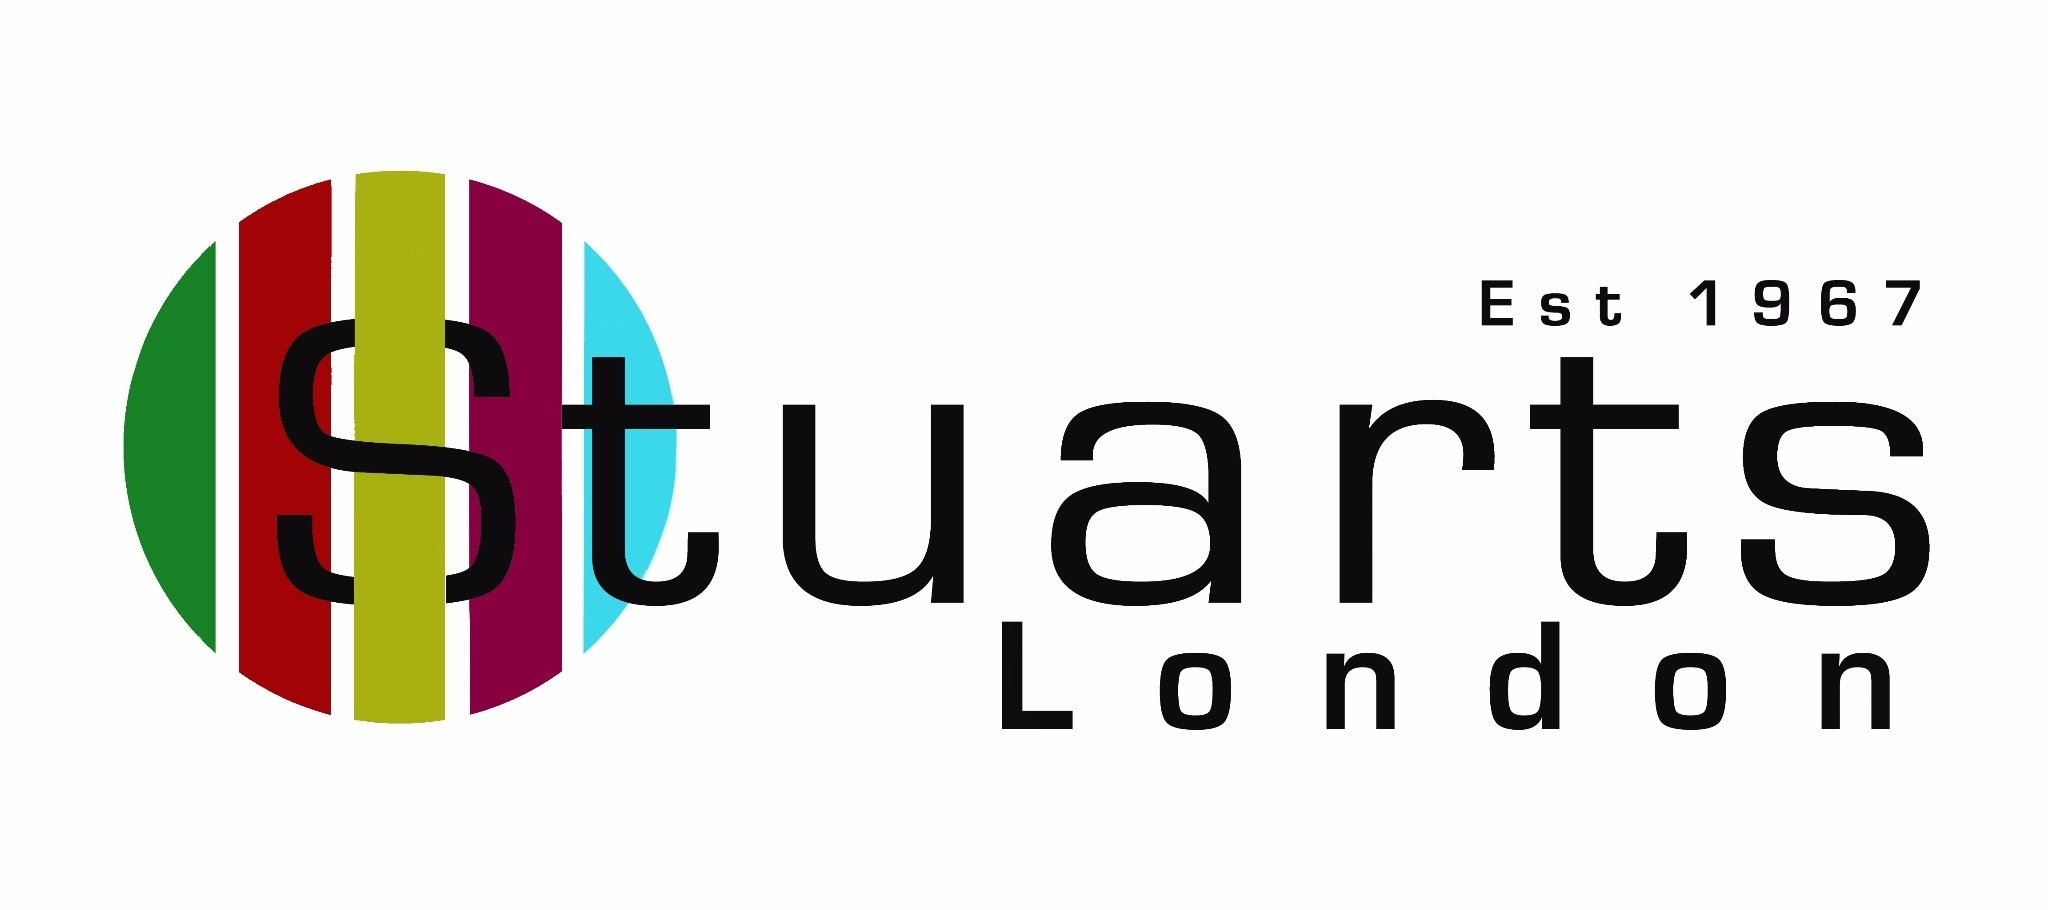 Stuarts London promo codes